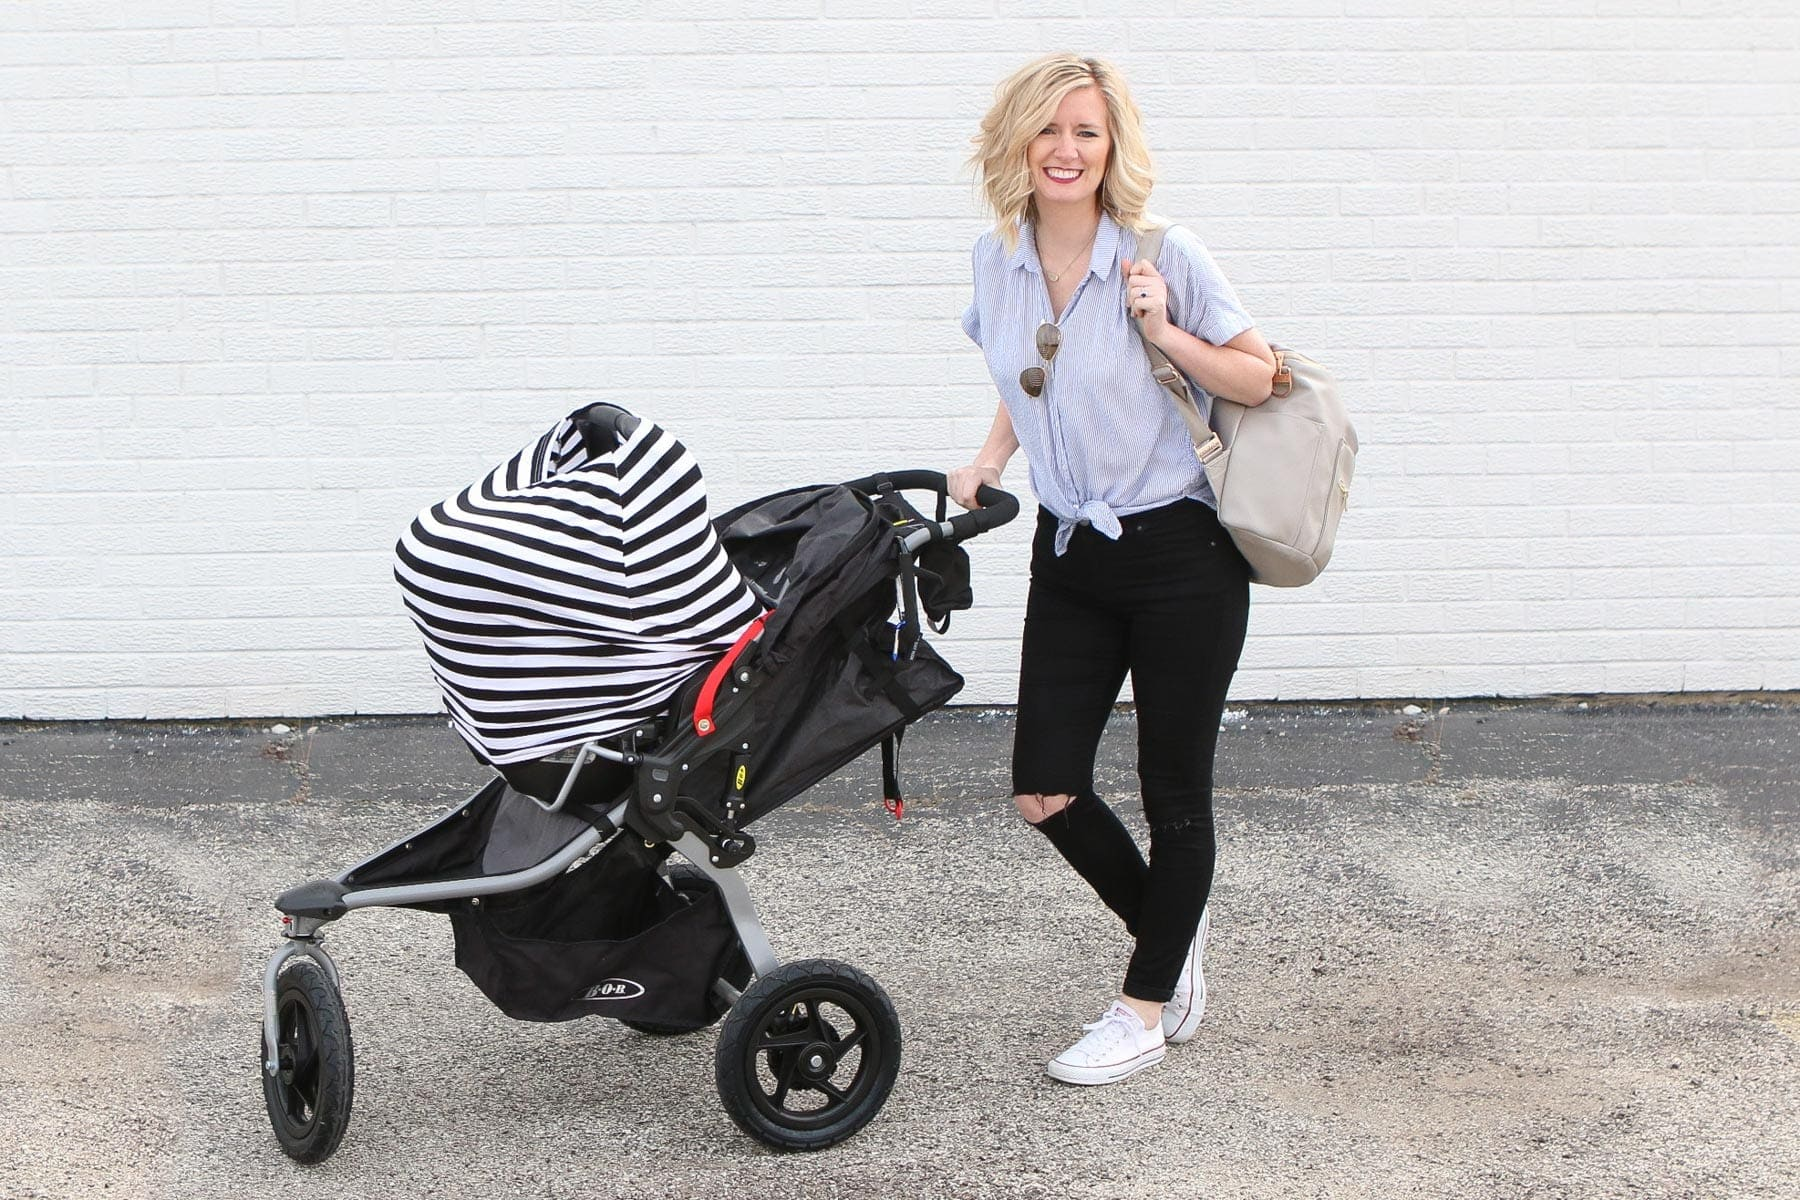 An honest review on the BOB stroller and how we've liked it with our newborn.